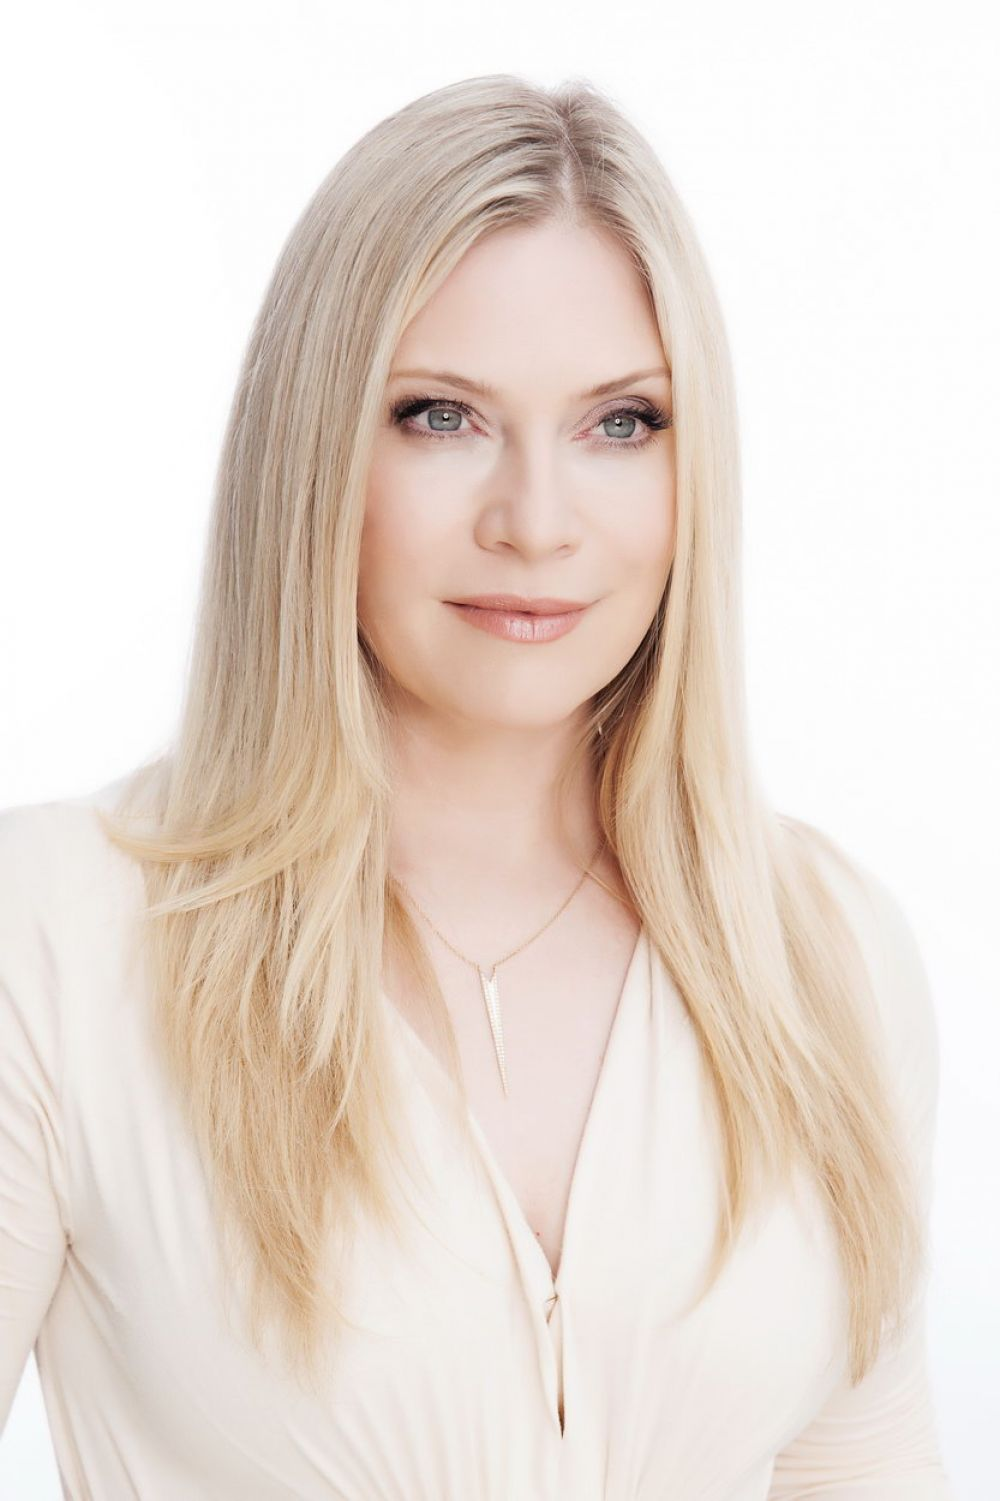 EMILY PROCTER - Manfred Baumann Photoshoot